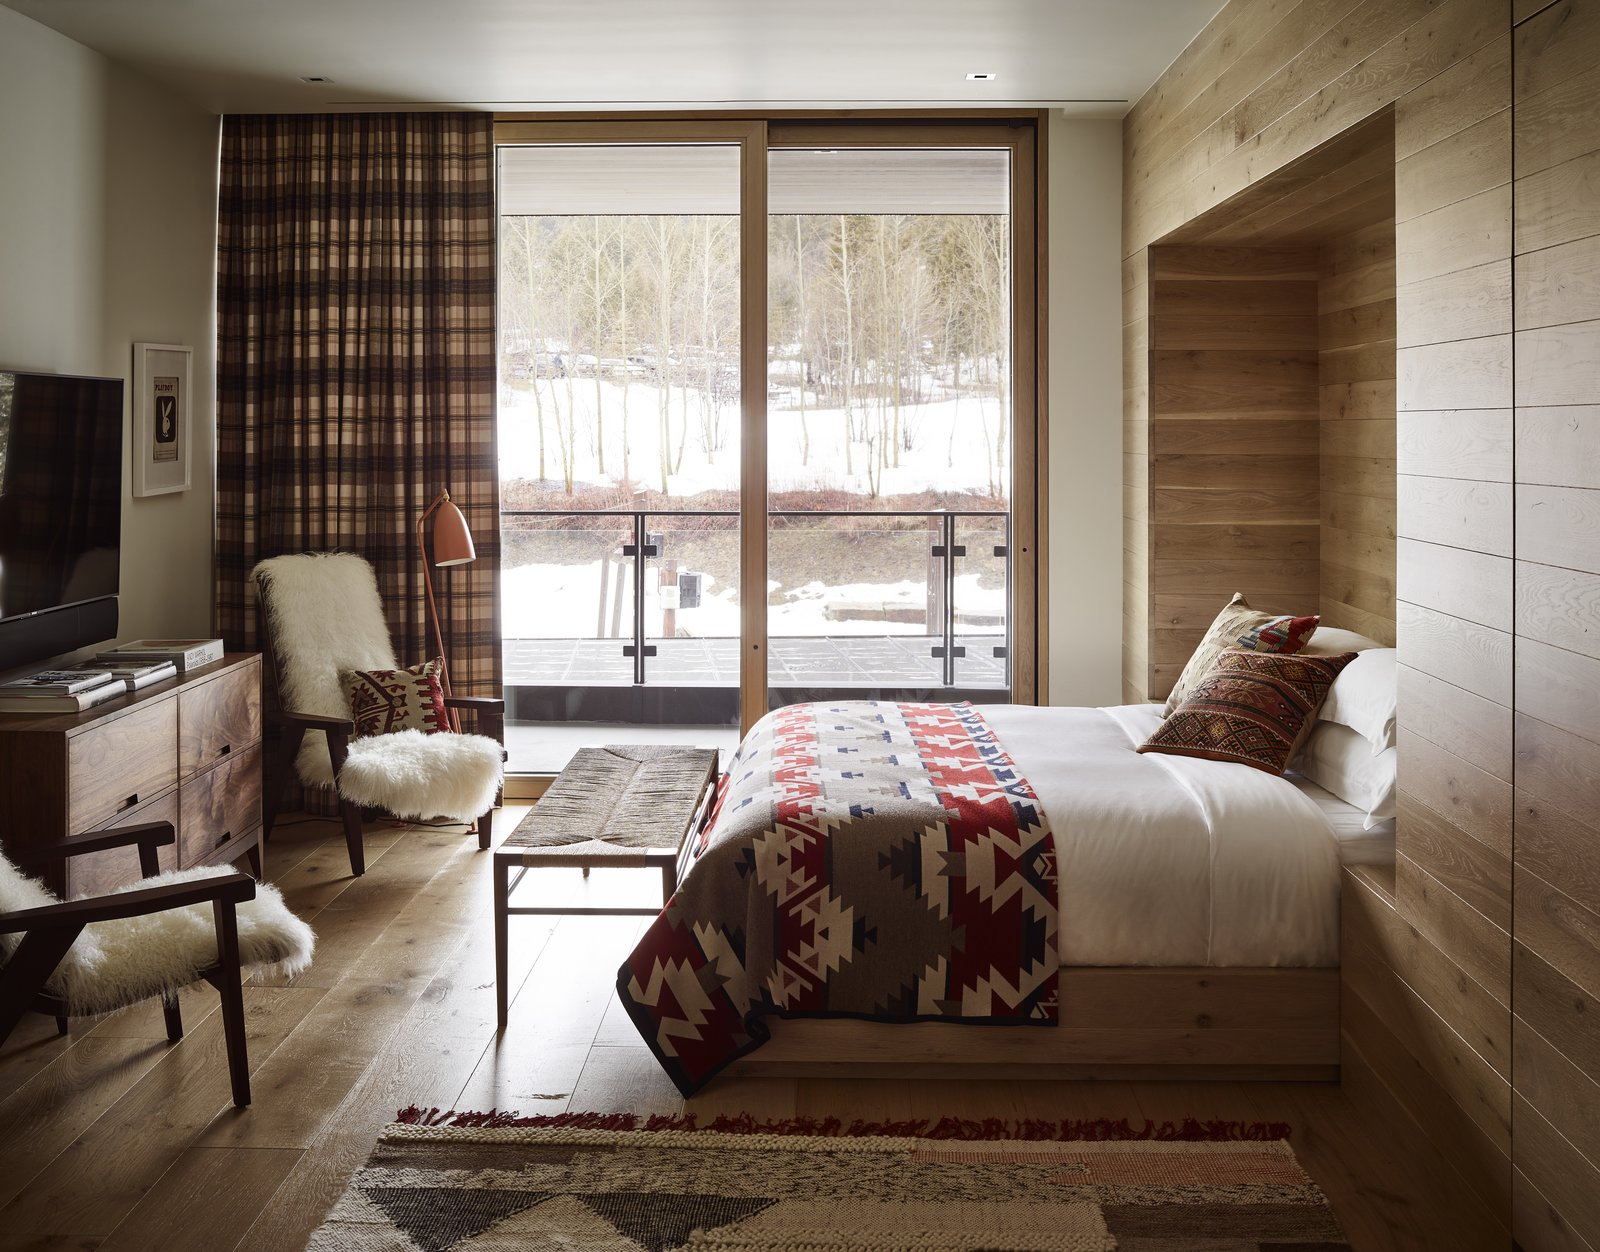 Bedroom, Light Hardwood, Recessed, Bed, Chair, Floor, Rug, and Bench Prints, plaids, and furs provide warmth and coziness, while introducing nods to he rugged American West.  Best Bedroom Recessed Light Hardwood Bench Photos from Caldera House